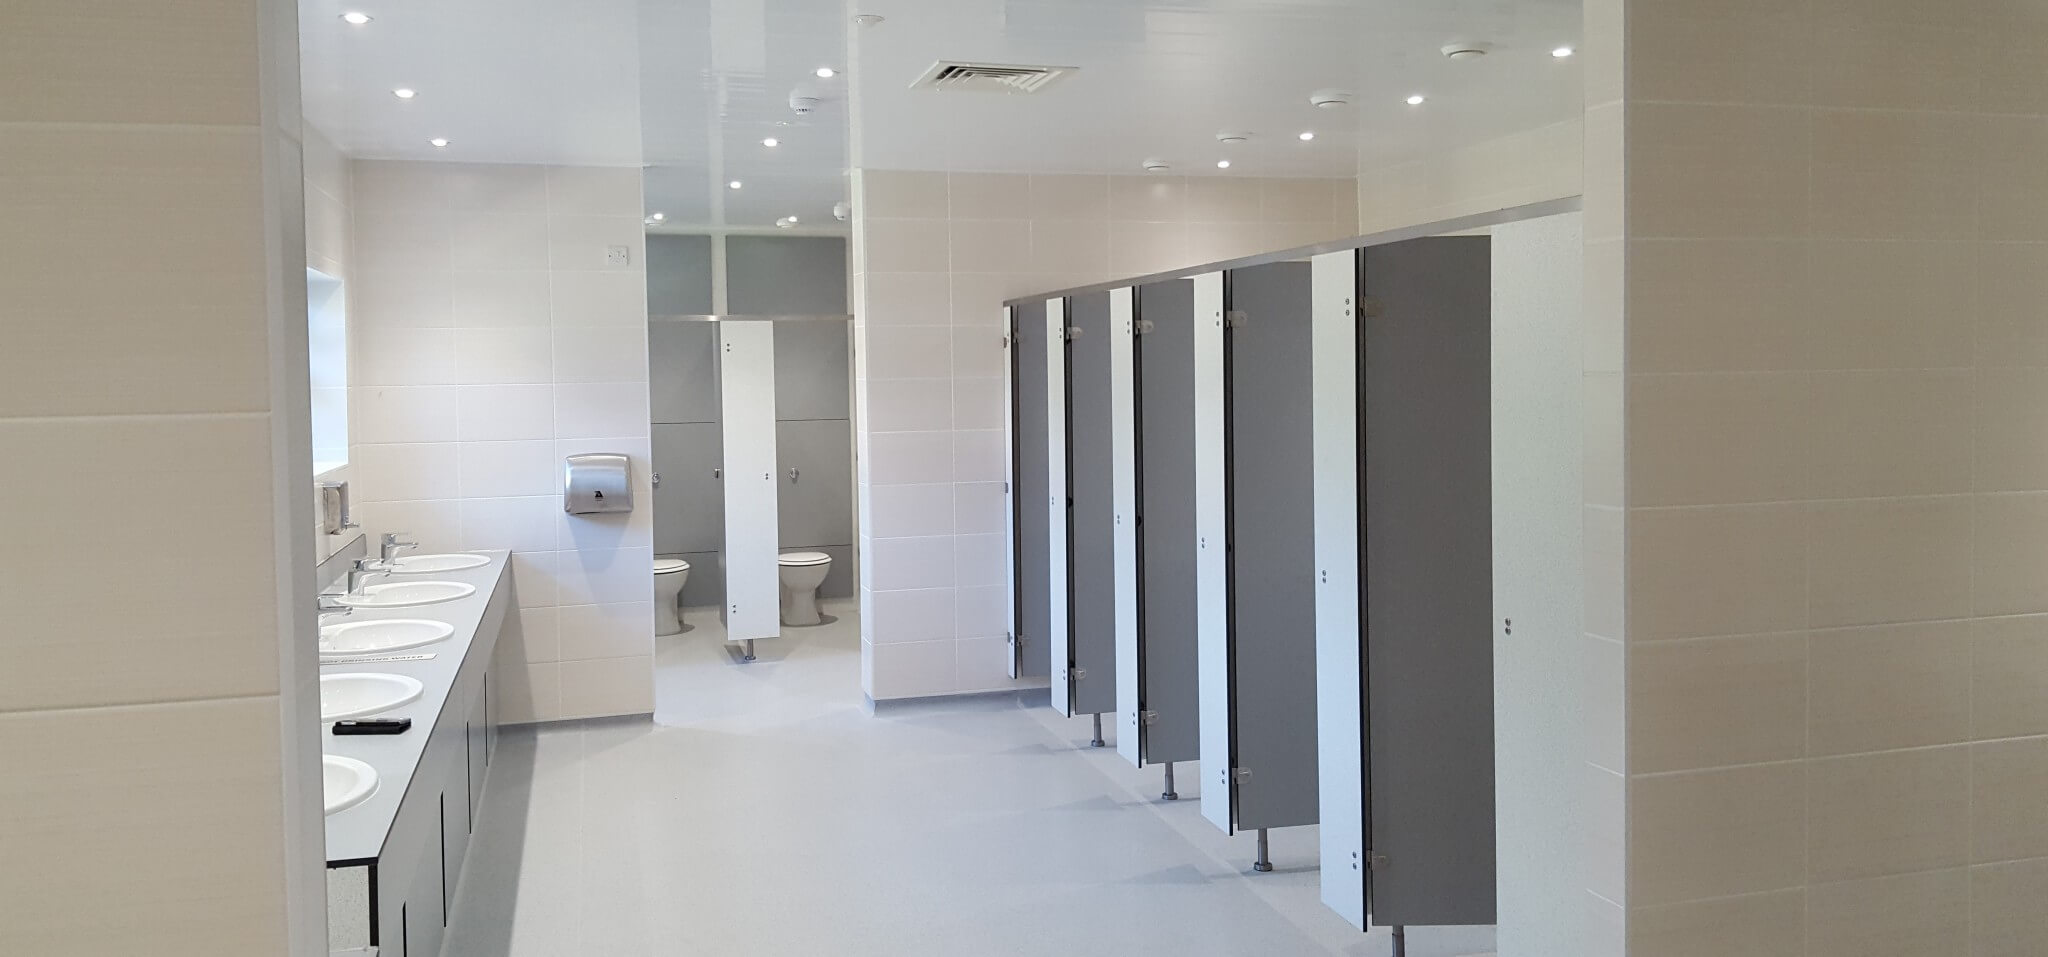 washroom-refurbishment-norwich-norfolk